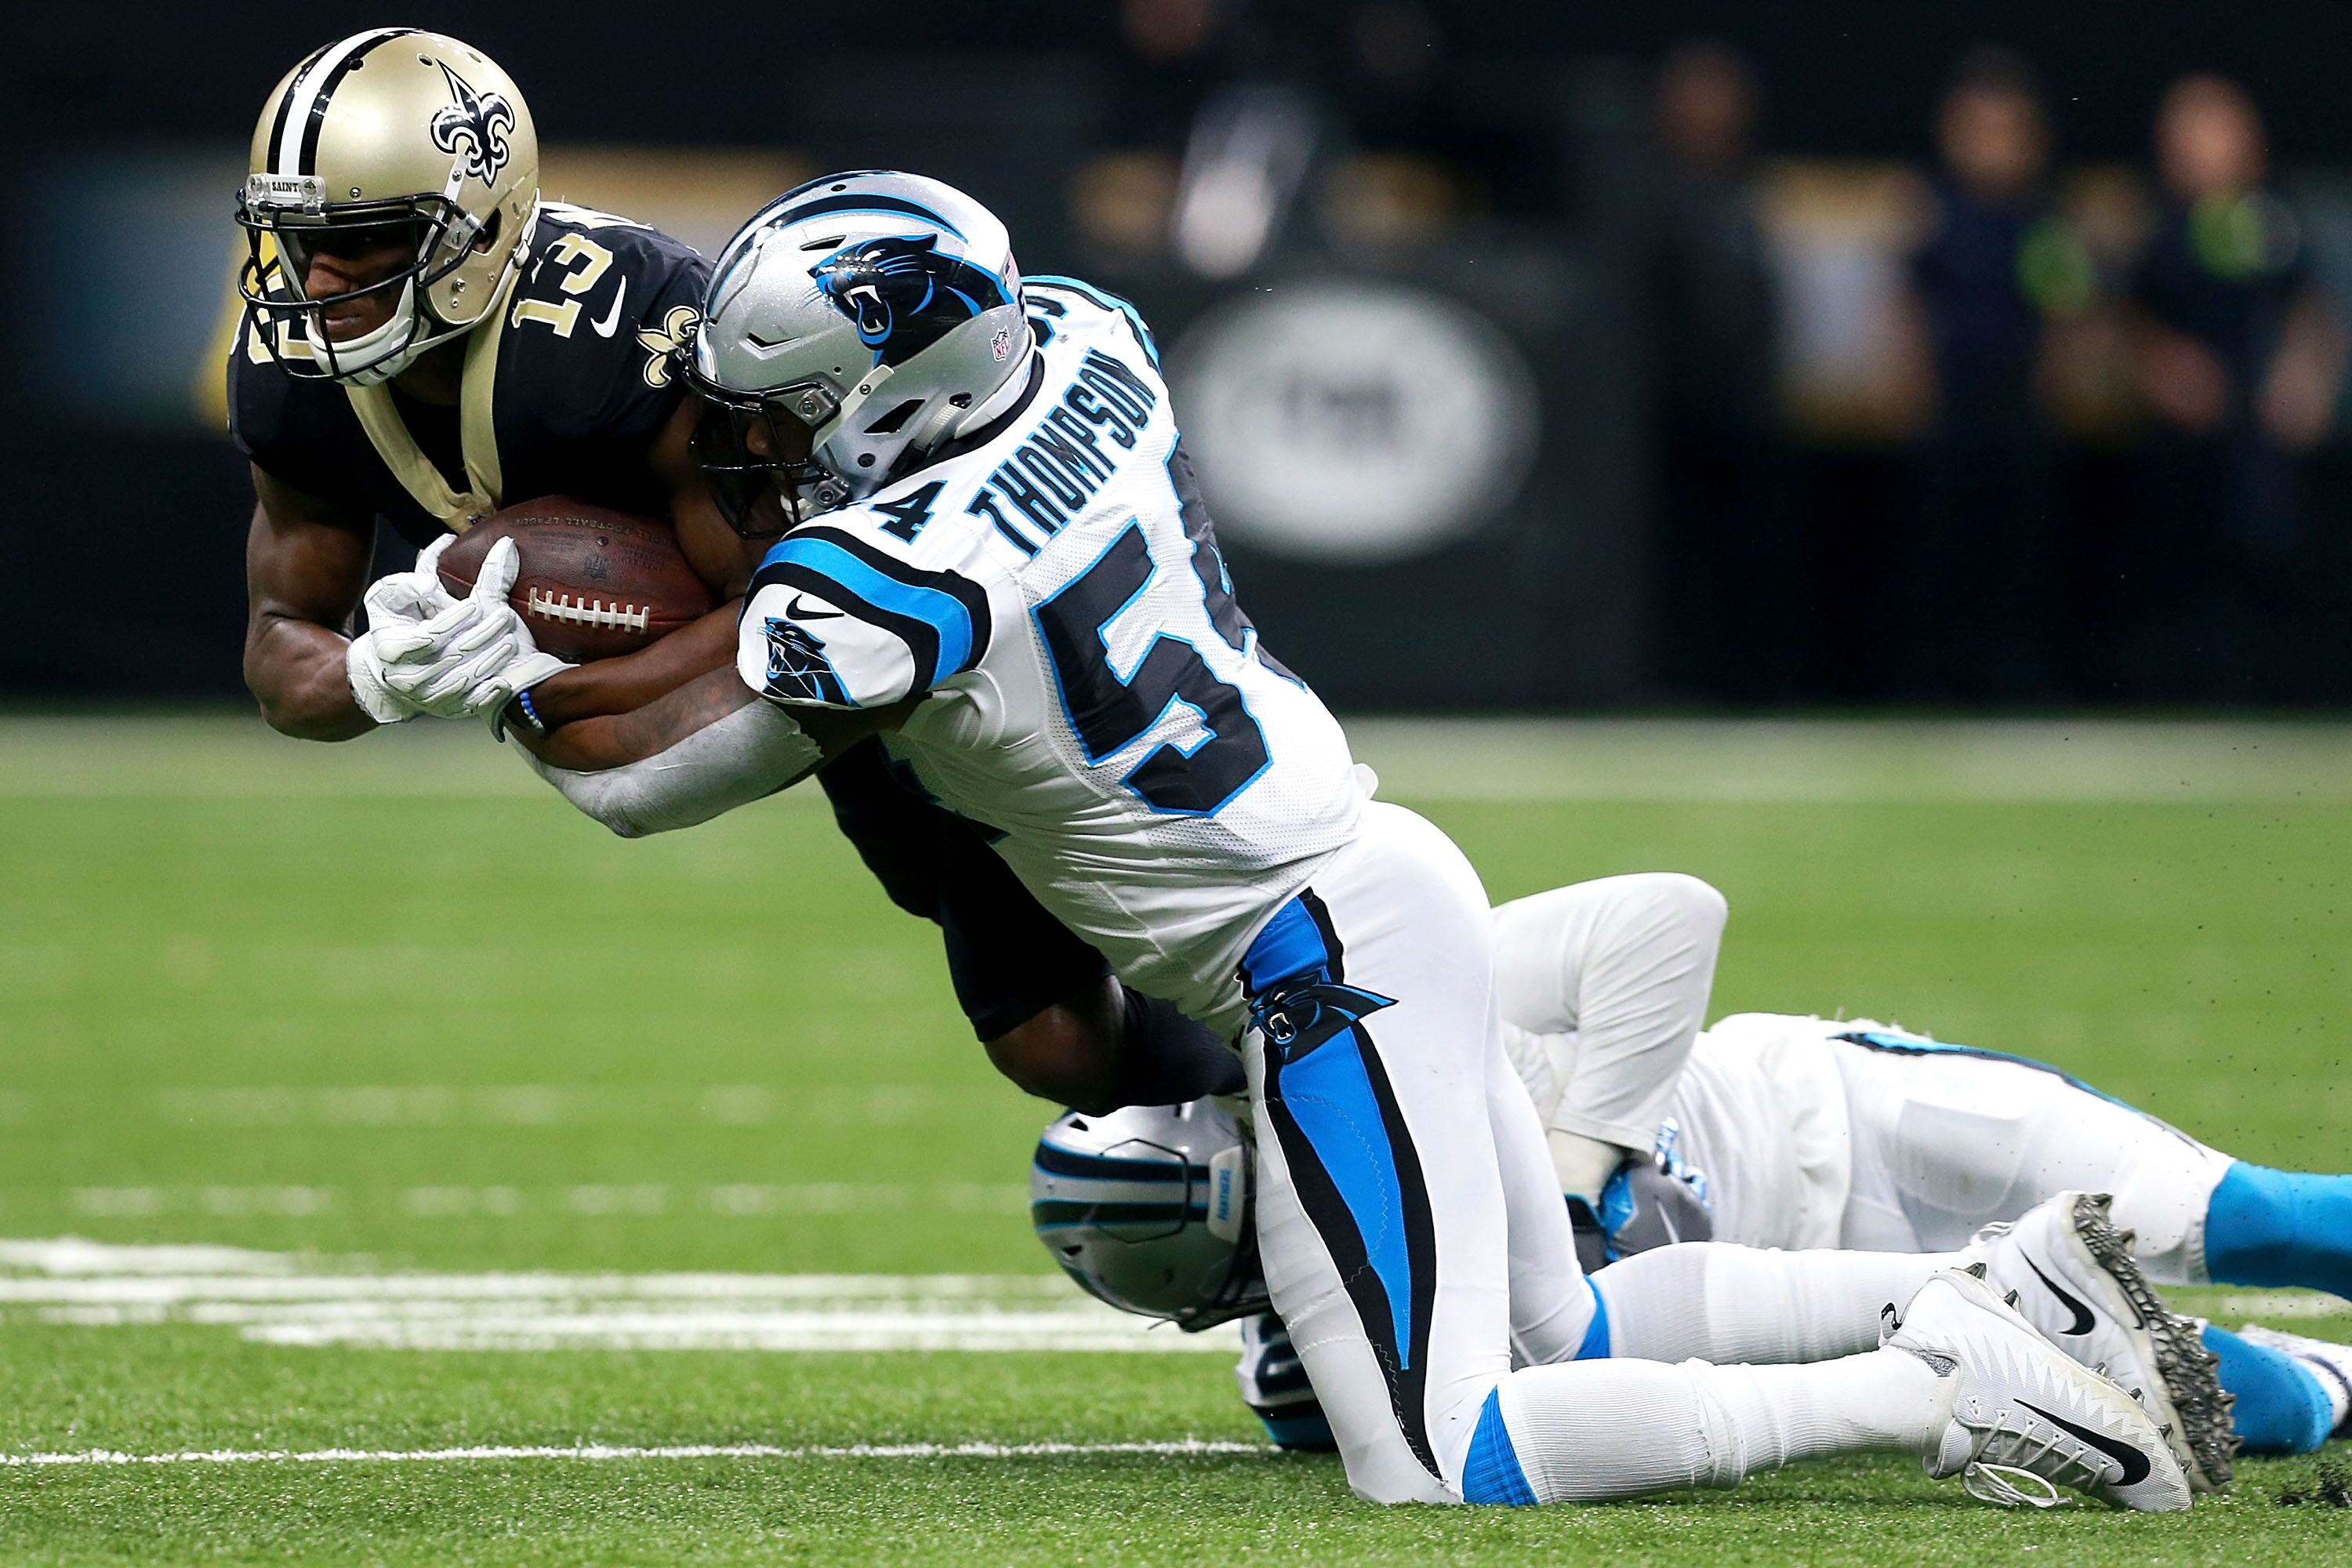 884973712-carolina-panthers-v-new-orleans-saints.jpg